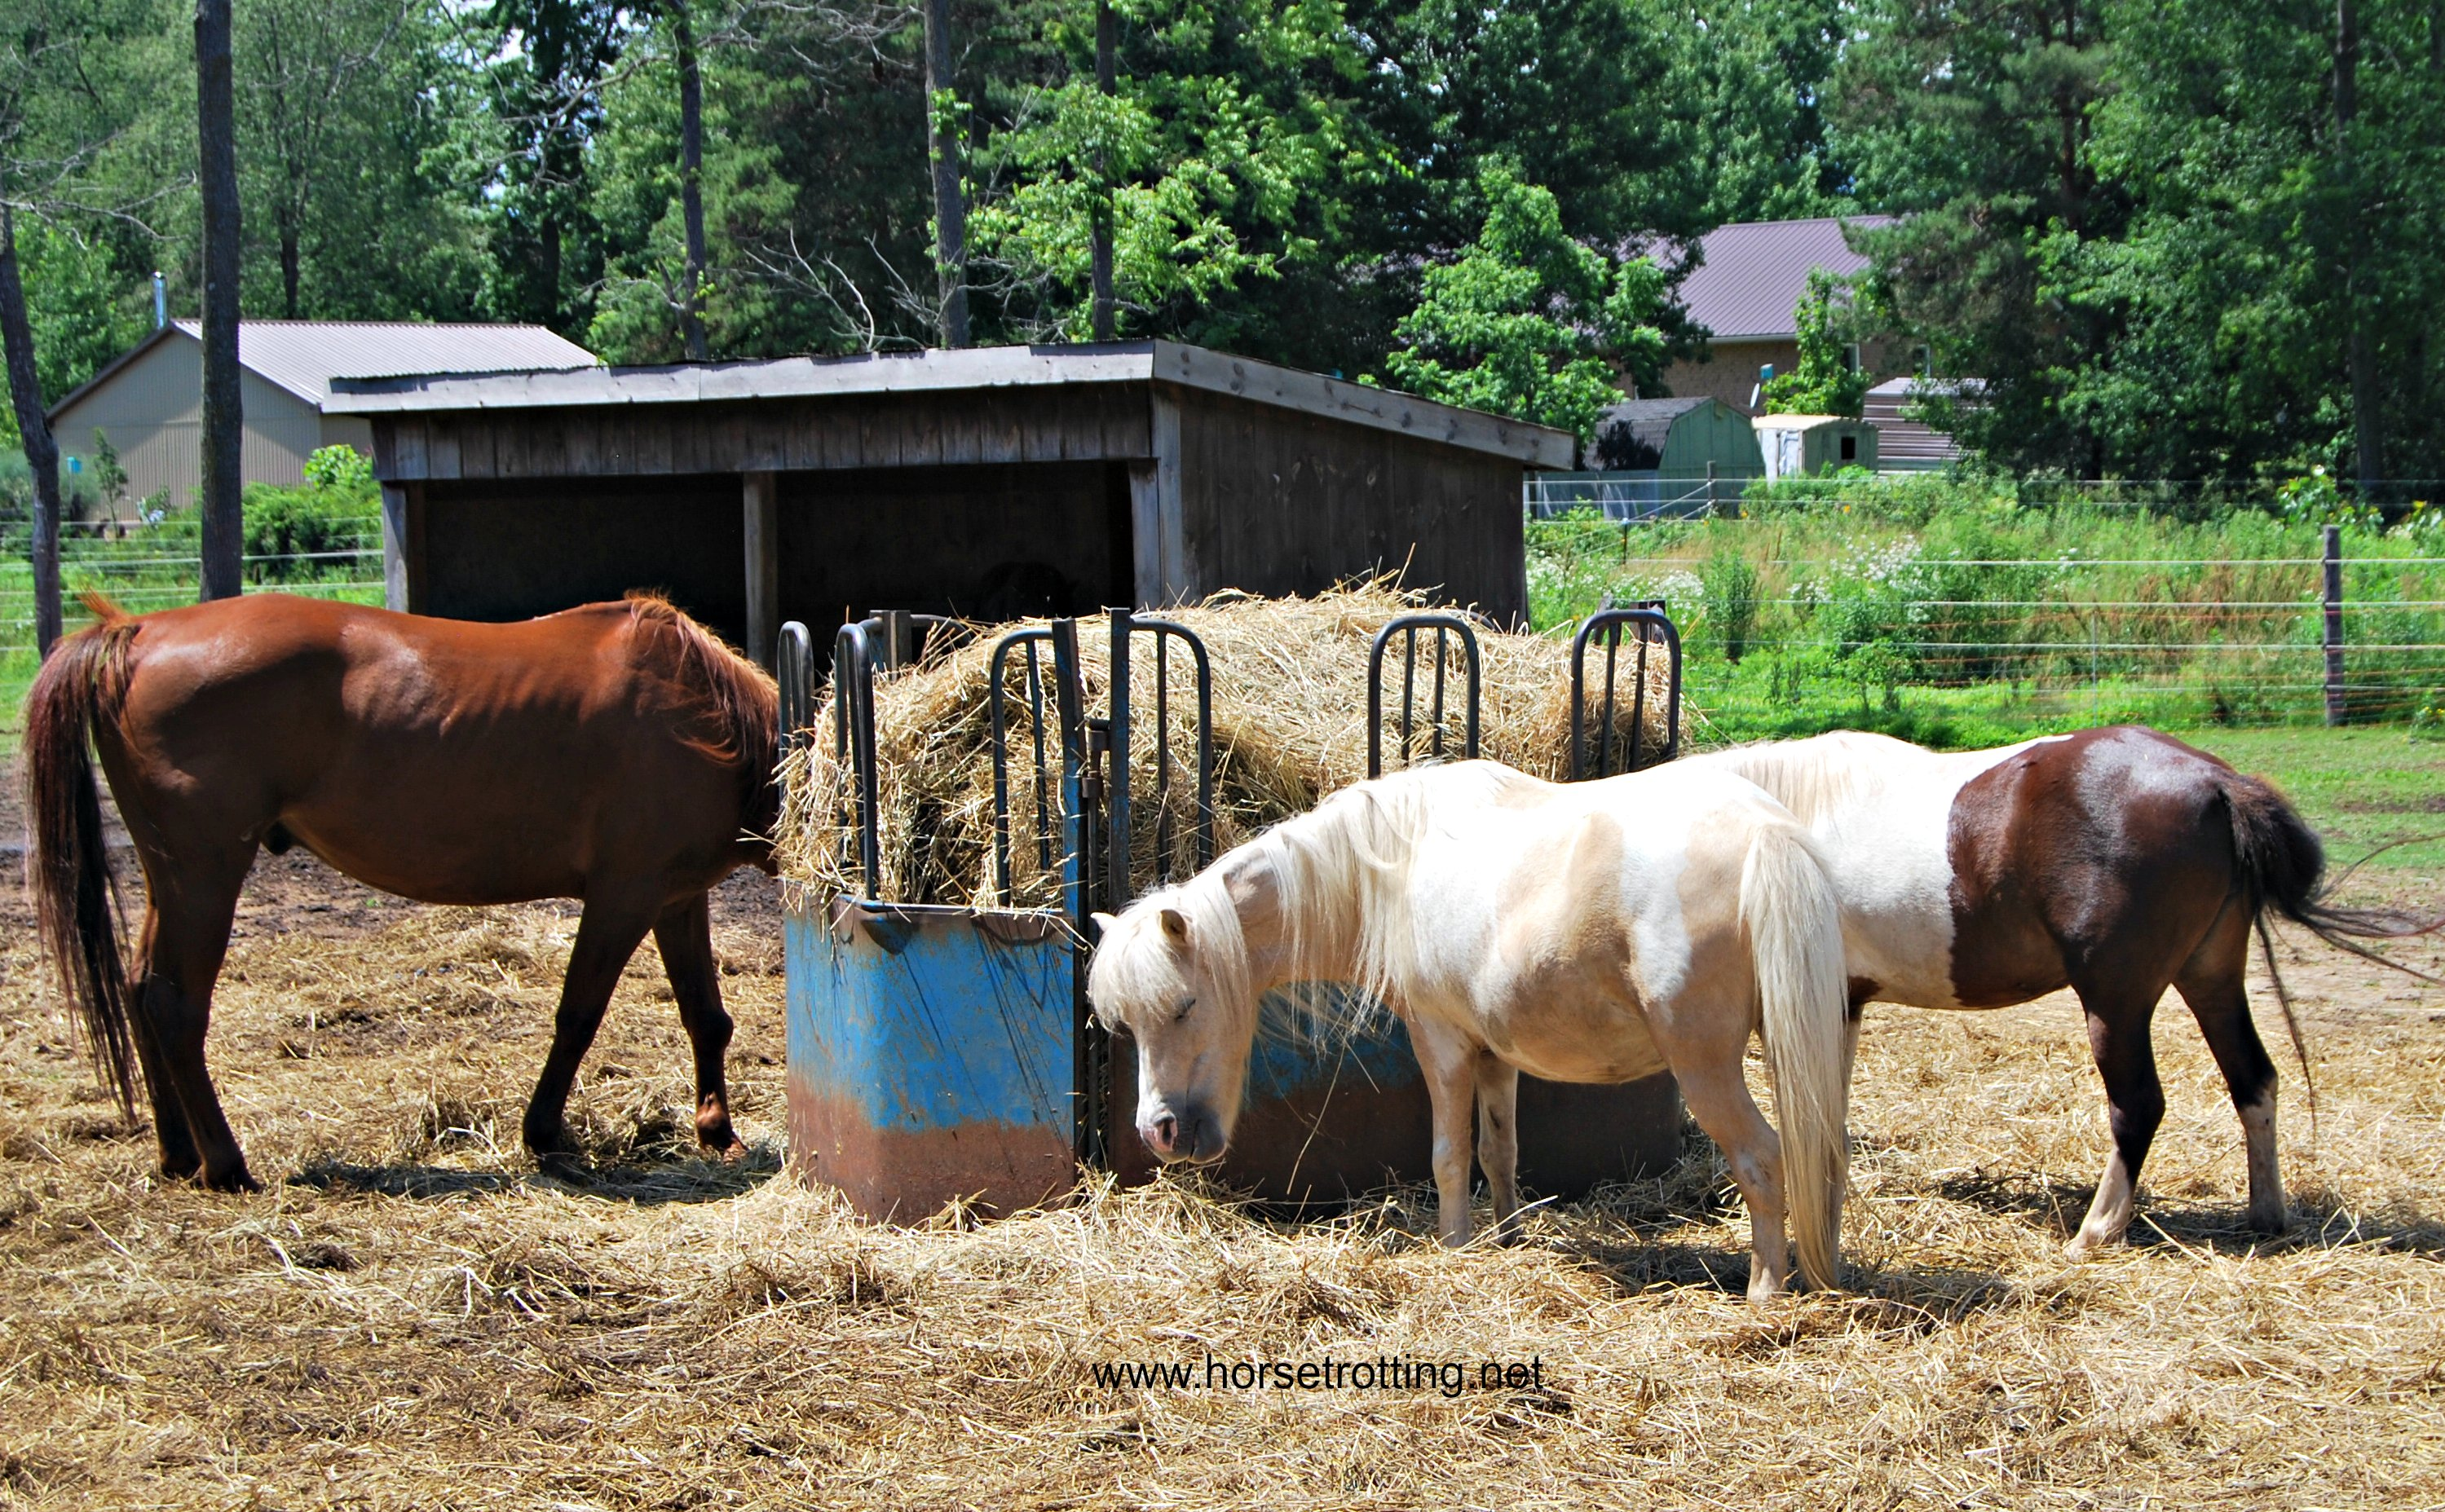 Horses at Ralphy's Resort Animal Sanctuary